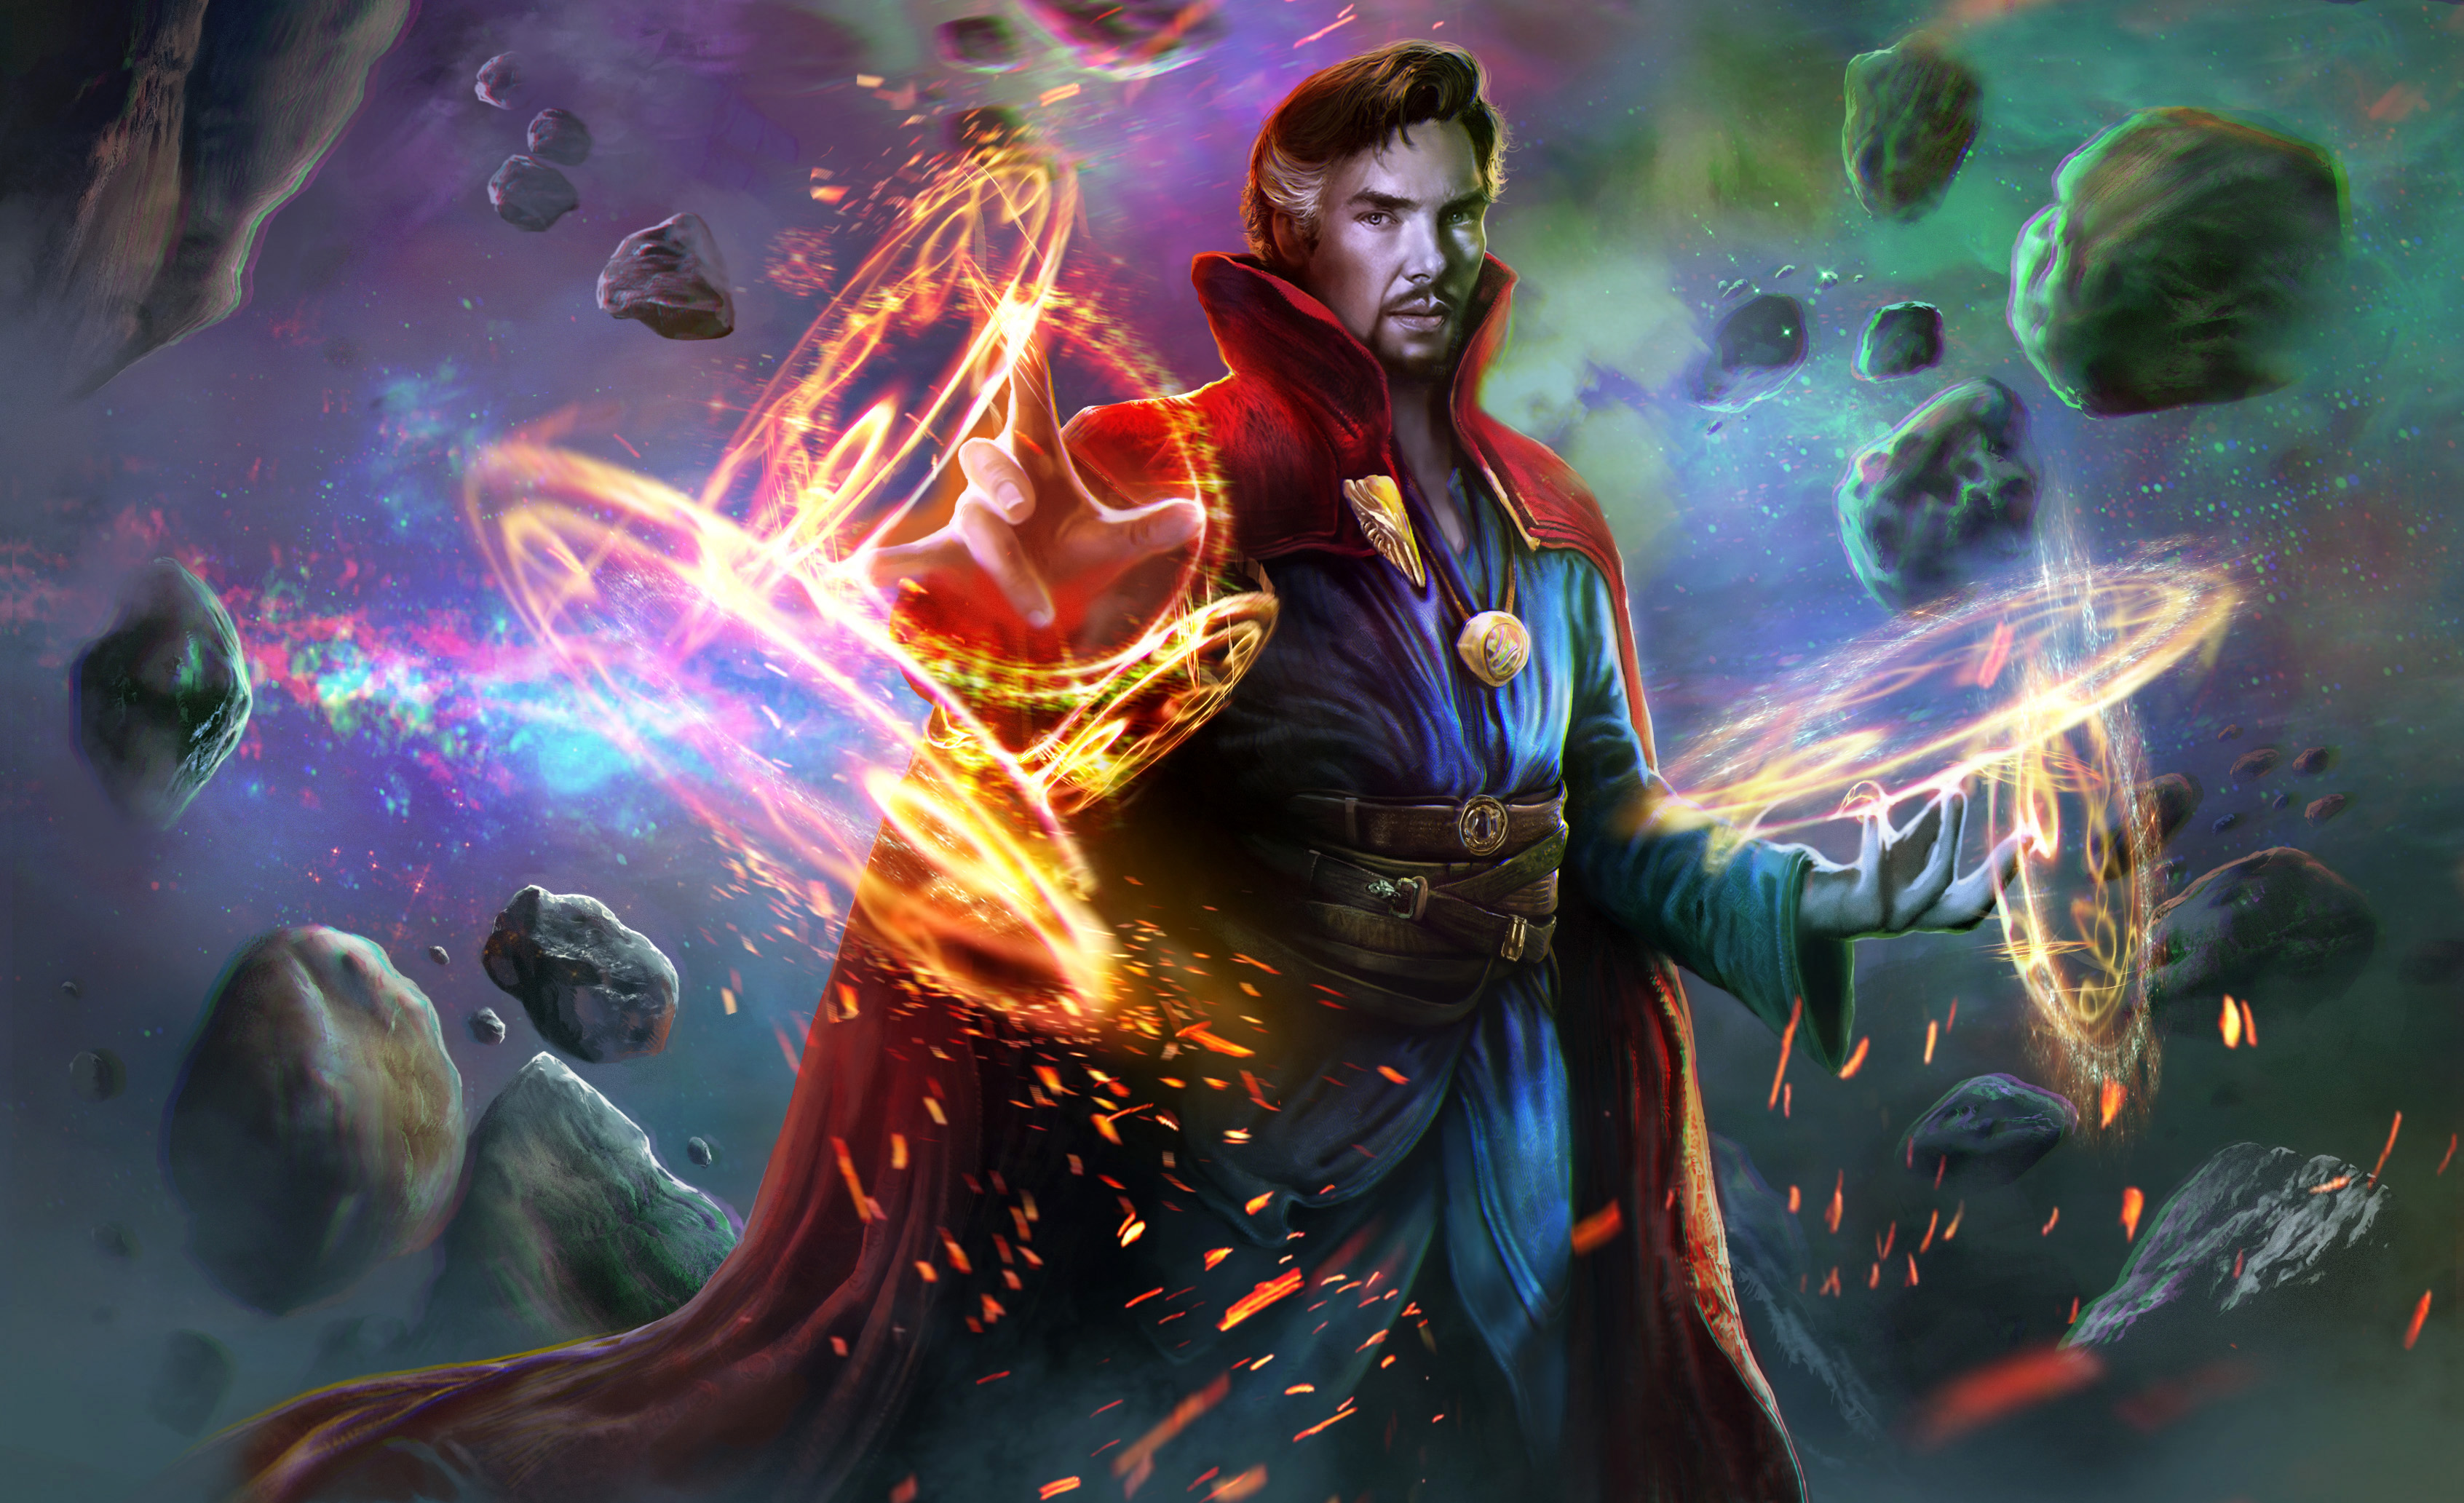 Dr. Strange by mehdic on DeviantArt